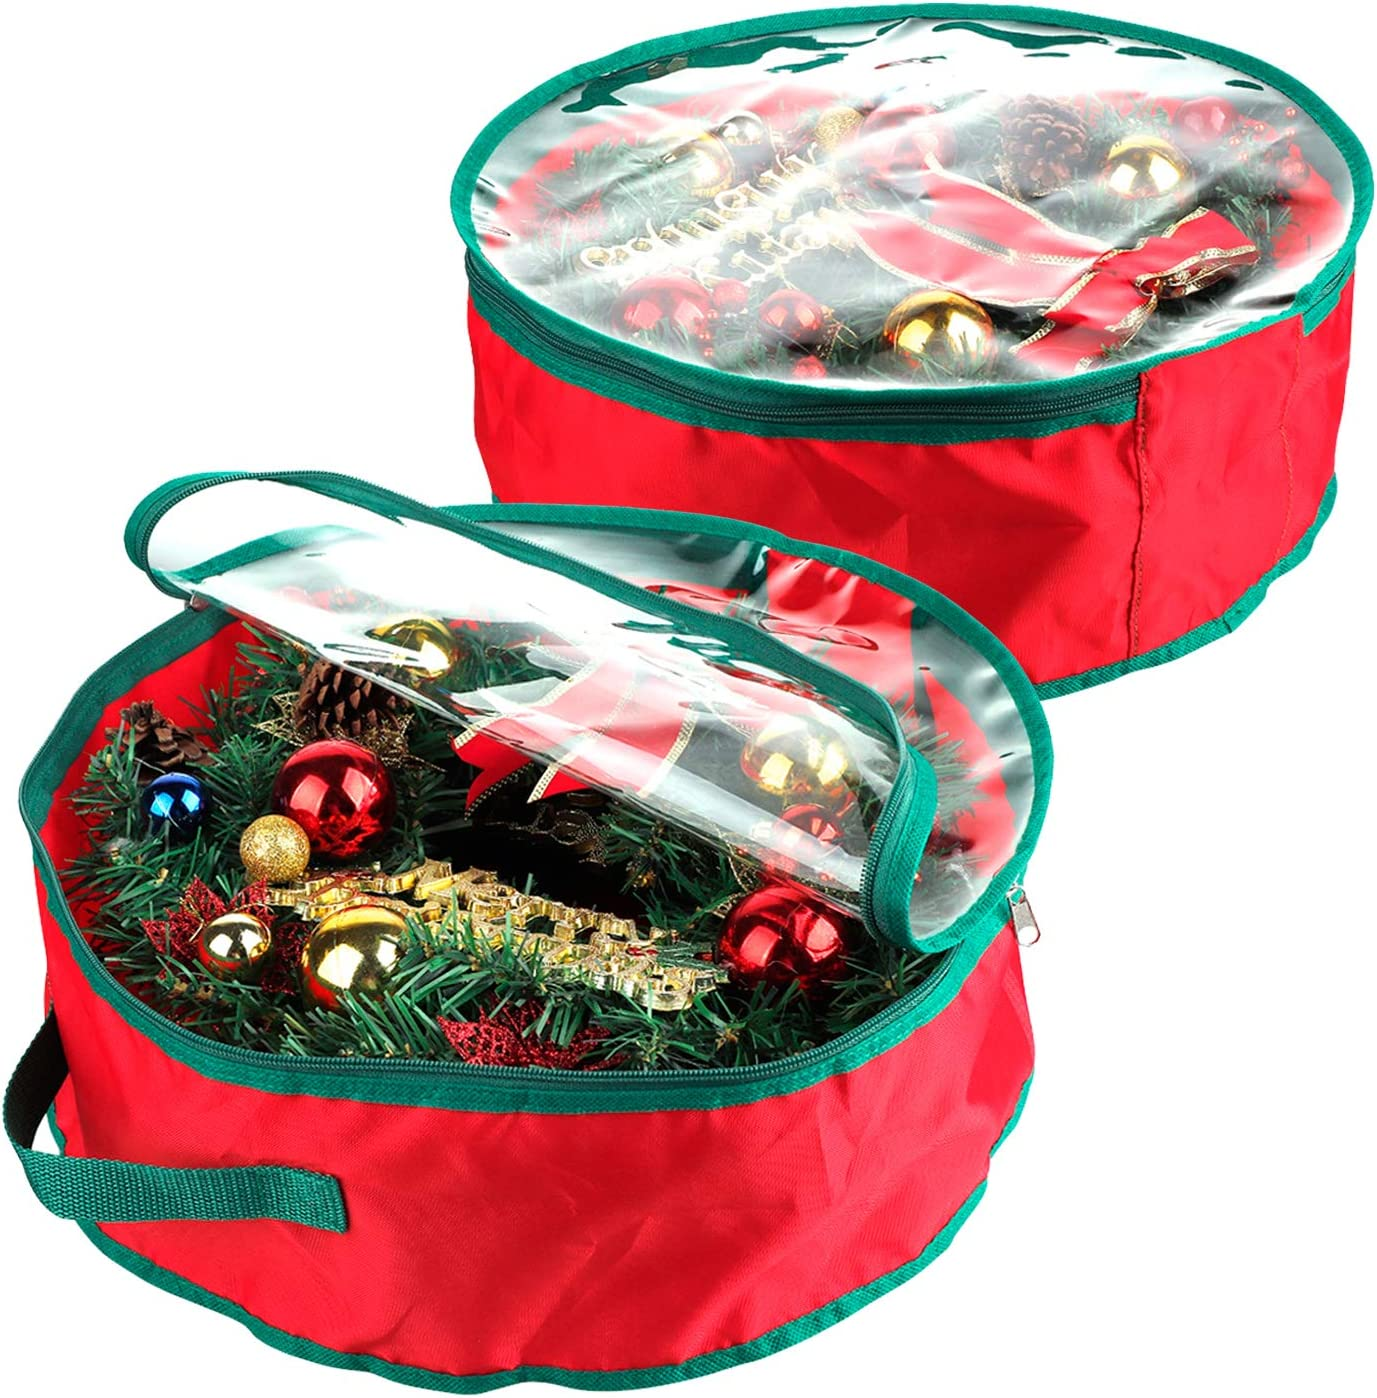 2Krmstr 20 Inch Christmas Wreath Storage Bag 2 Portable Pack of Large special price Free shipping anywhere in the nation